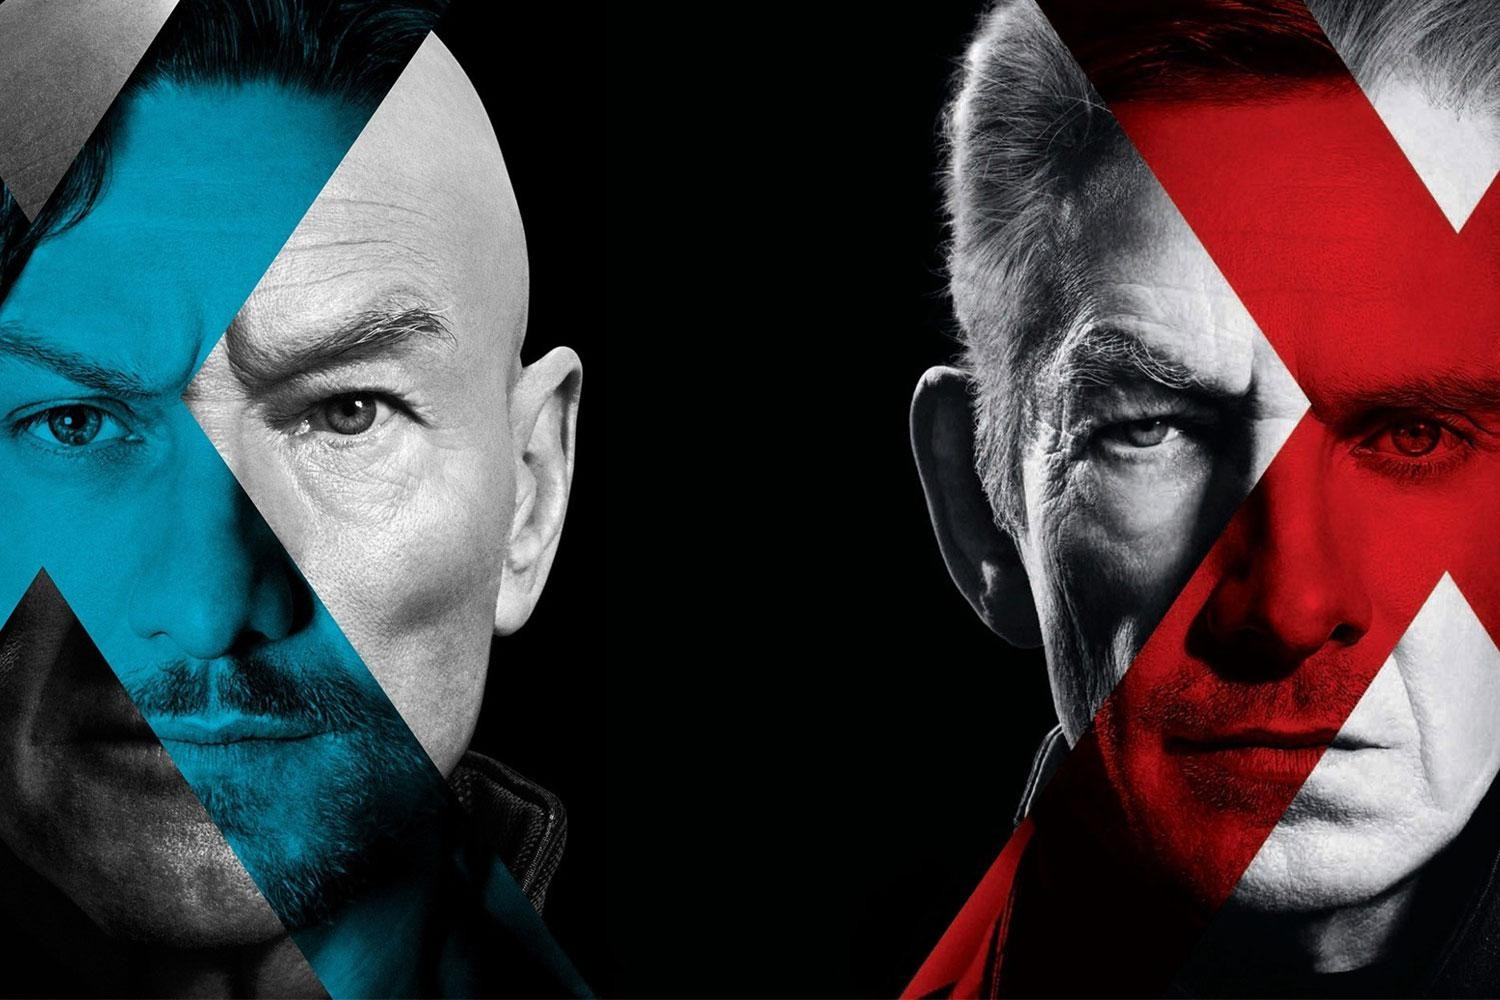 James McAvoy, Patrick Stewart, Ian McKellen, and Michael Fassbender in X-Men: Days of Future Past poster